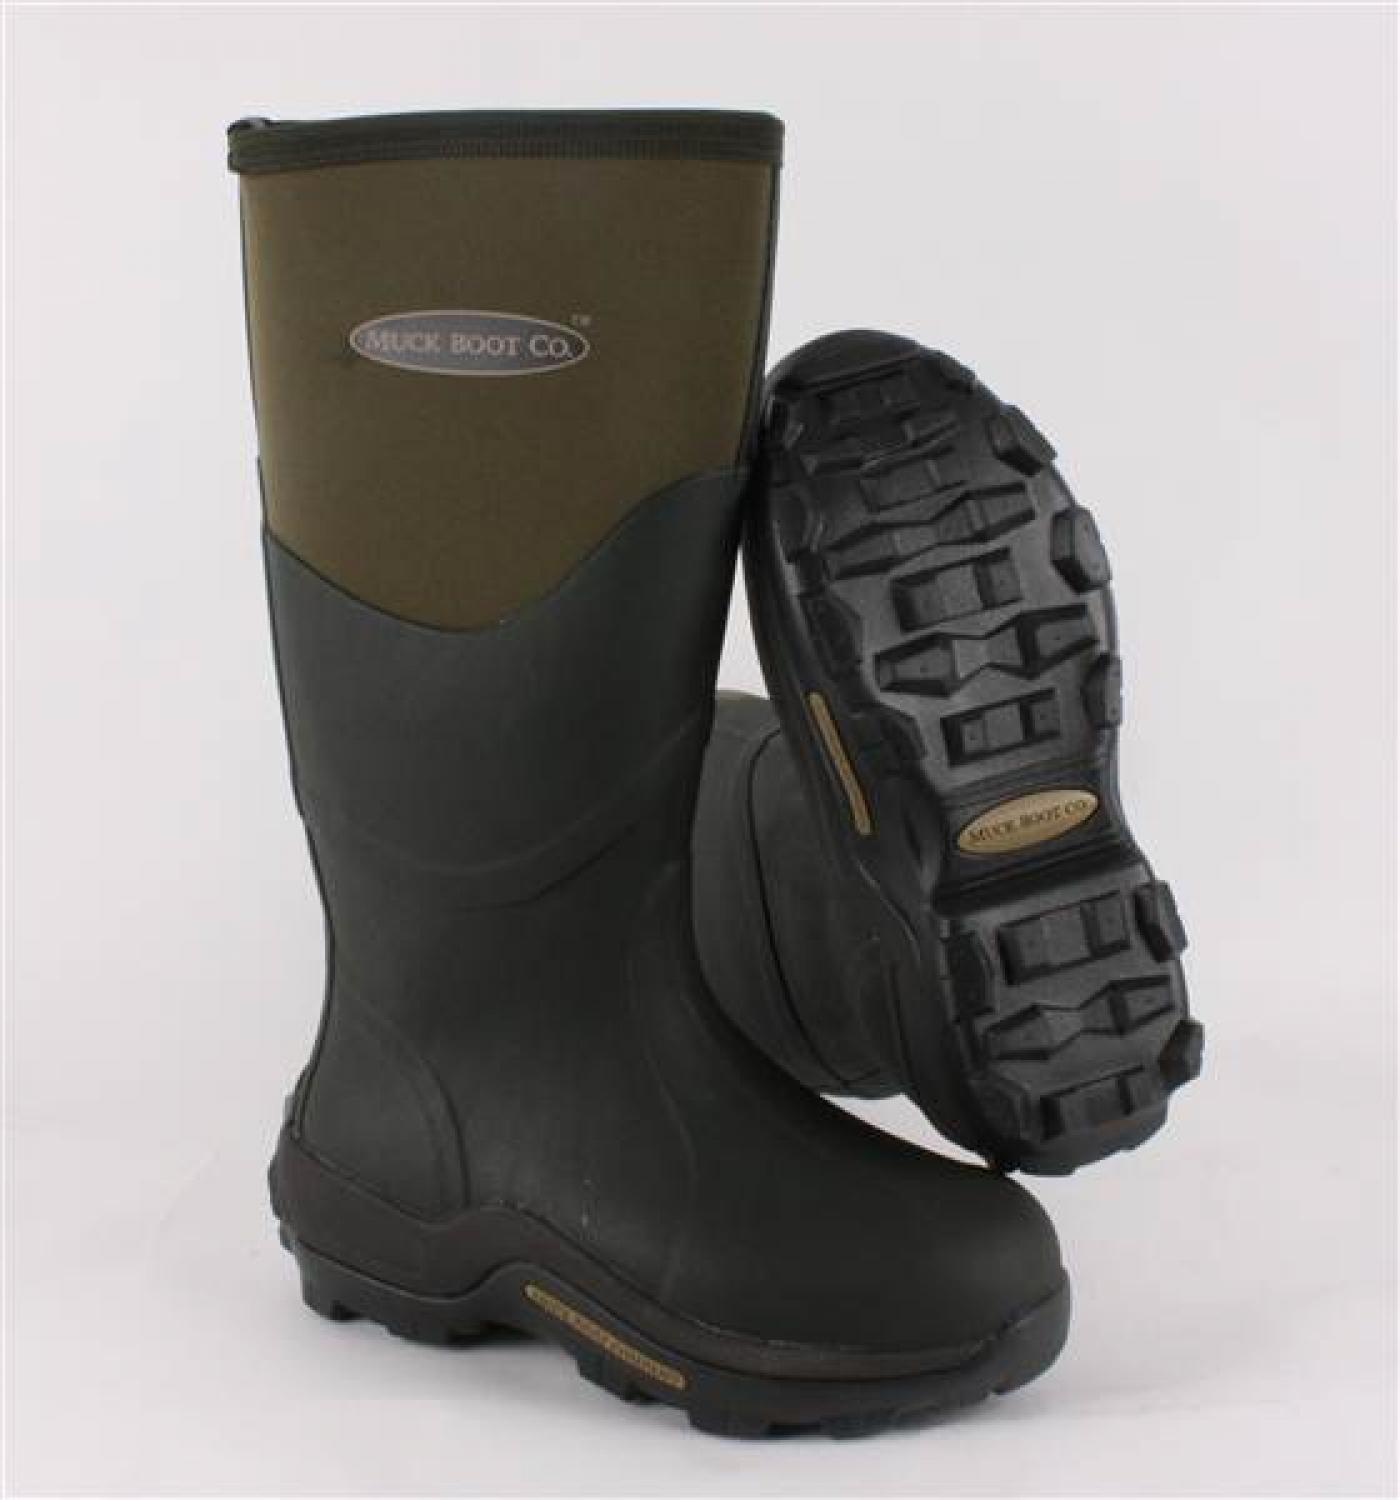 8e951cdb81b Buy Muckmaster / Tay Field Muck Boot UK5 from Fane Valley Stores ...